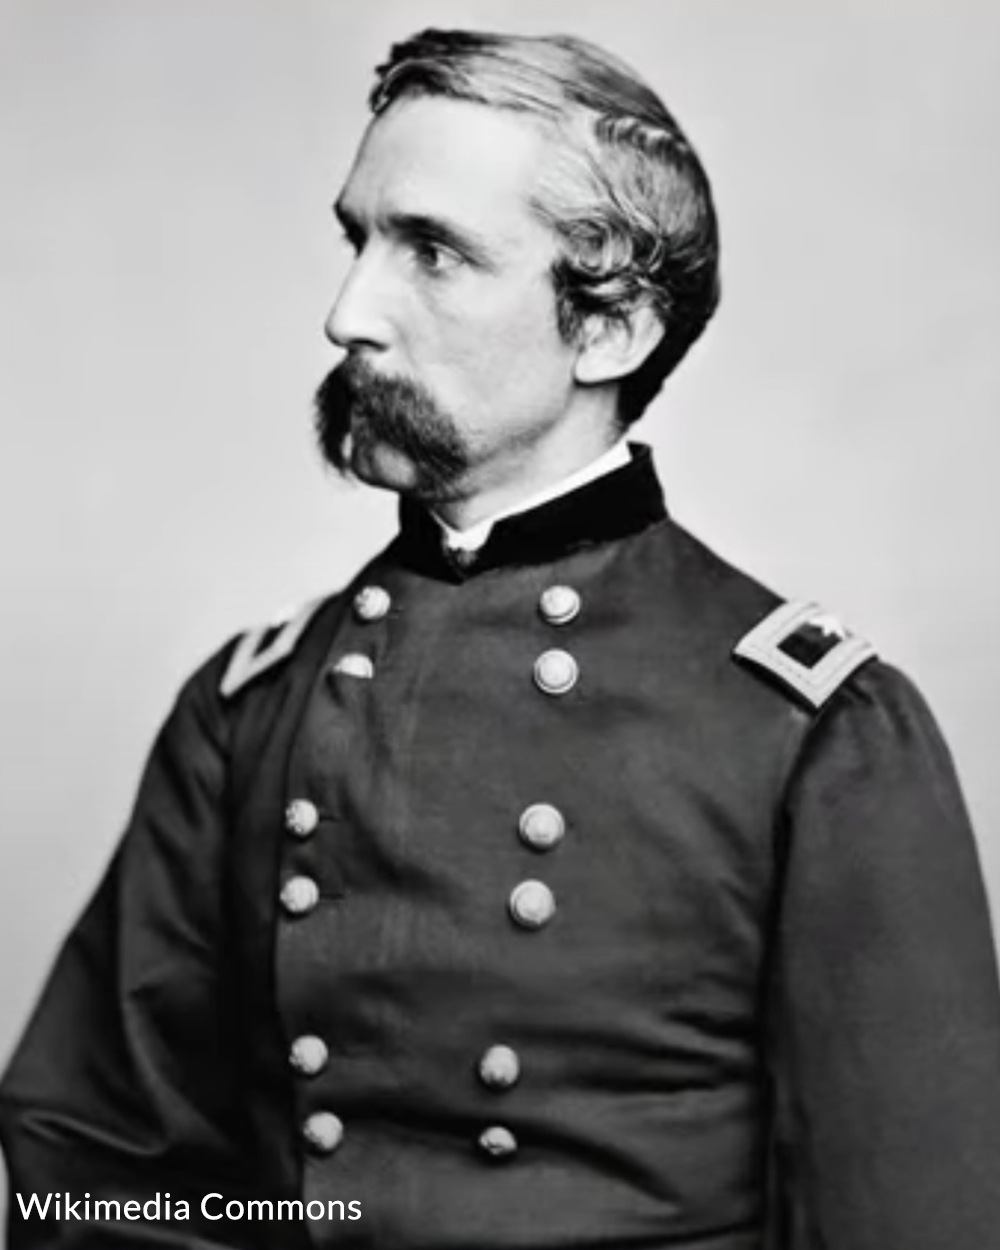 Joshua Lawrence Chamberlain was a professor at Bowdoin College in Maine when the war broke out.